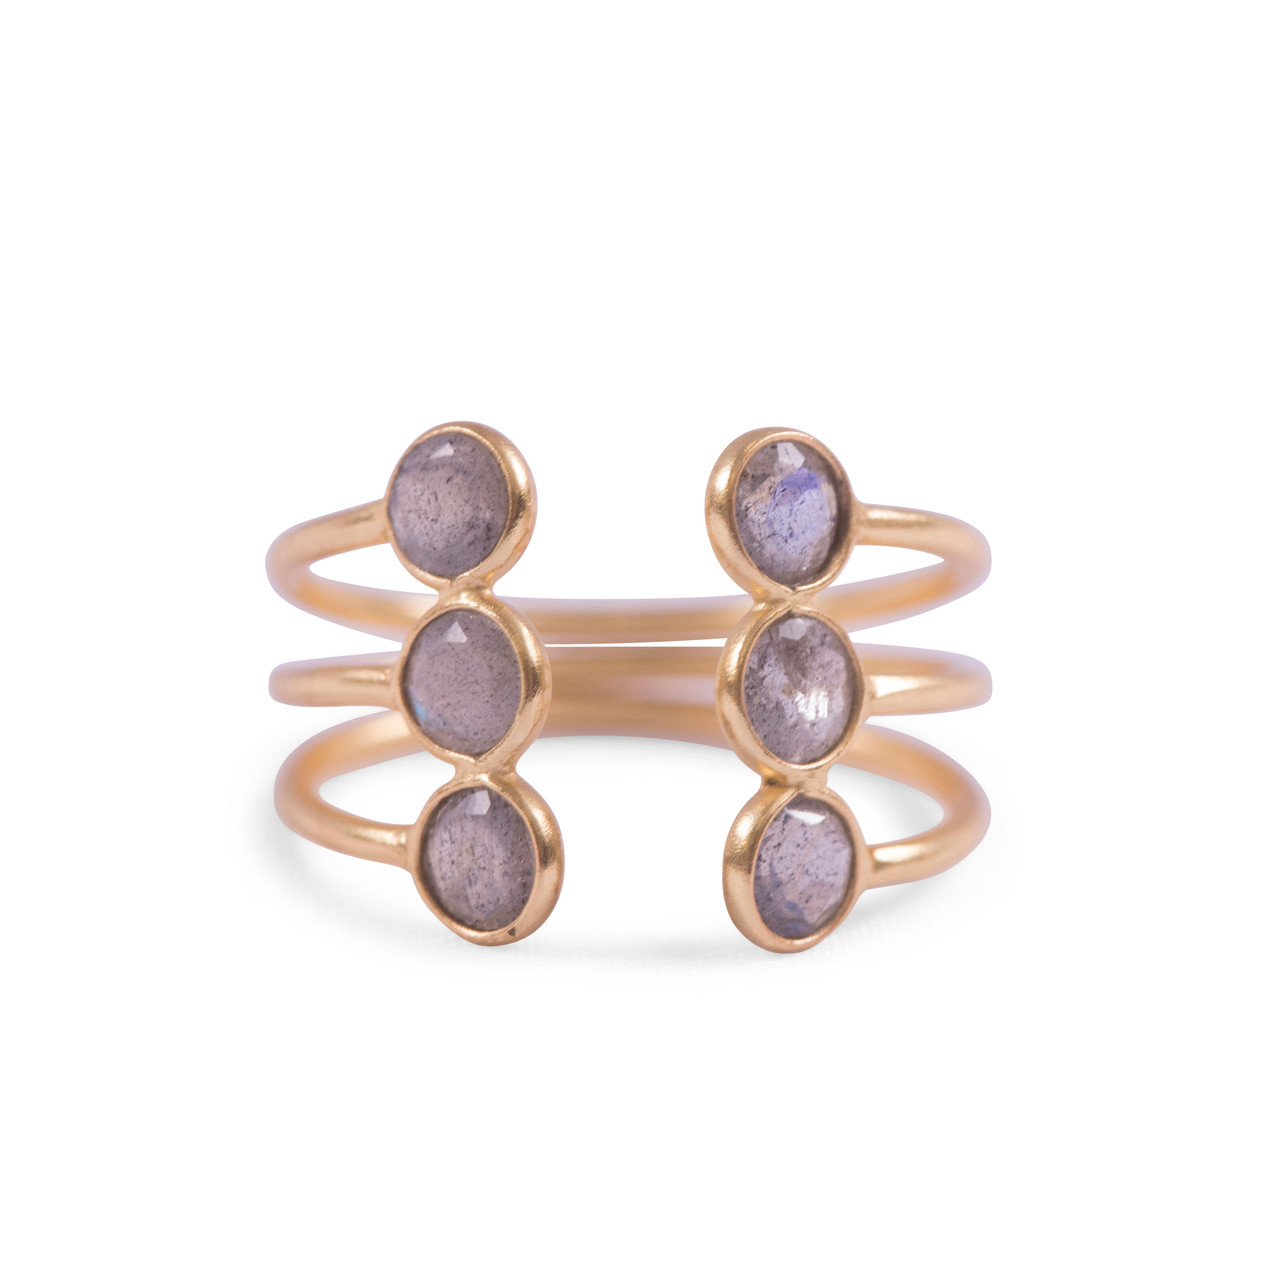 Gold Plated Open Ring with 6 Labradorite Stones